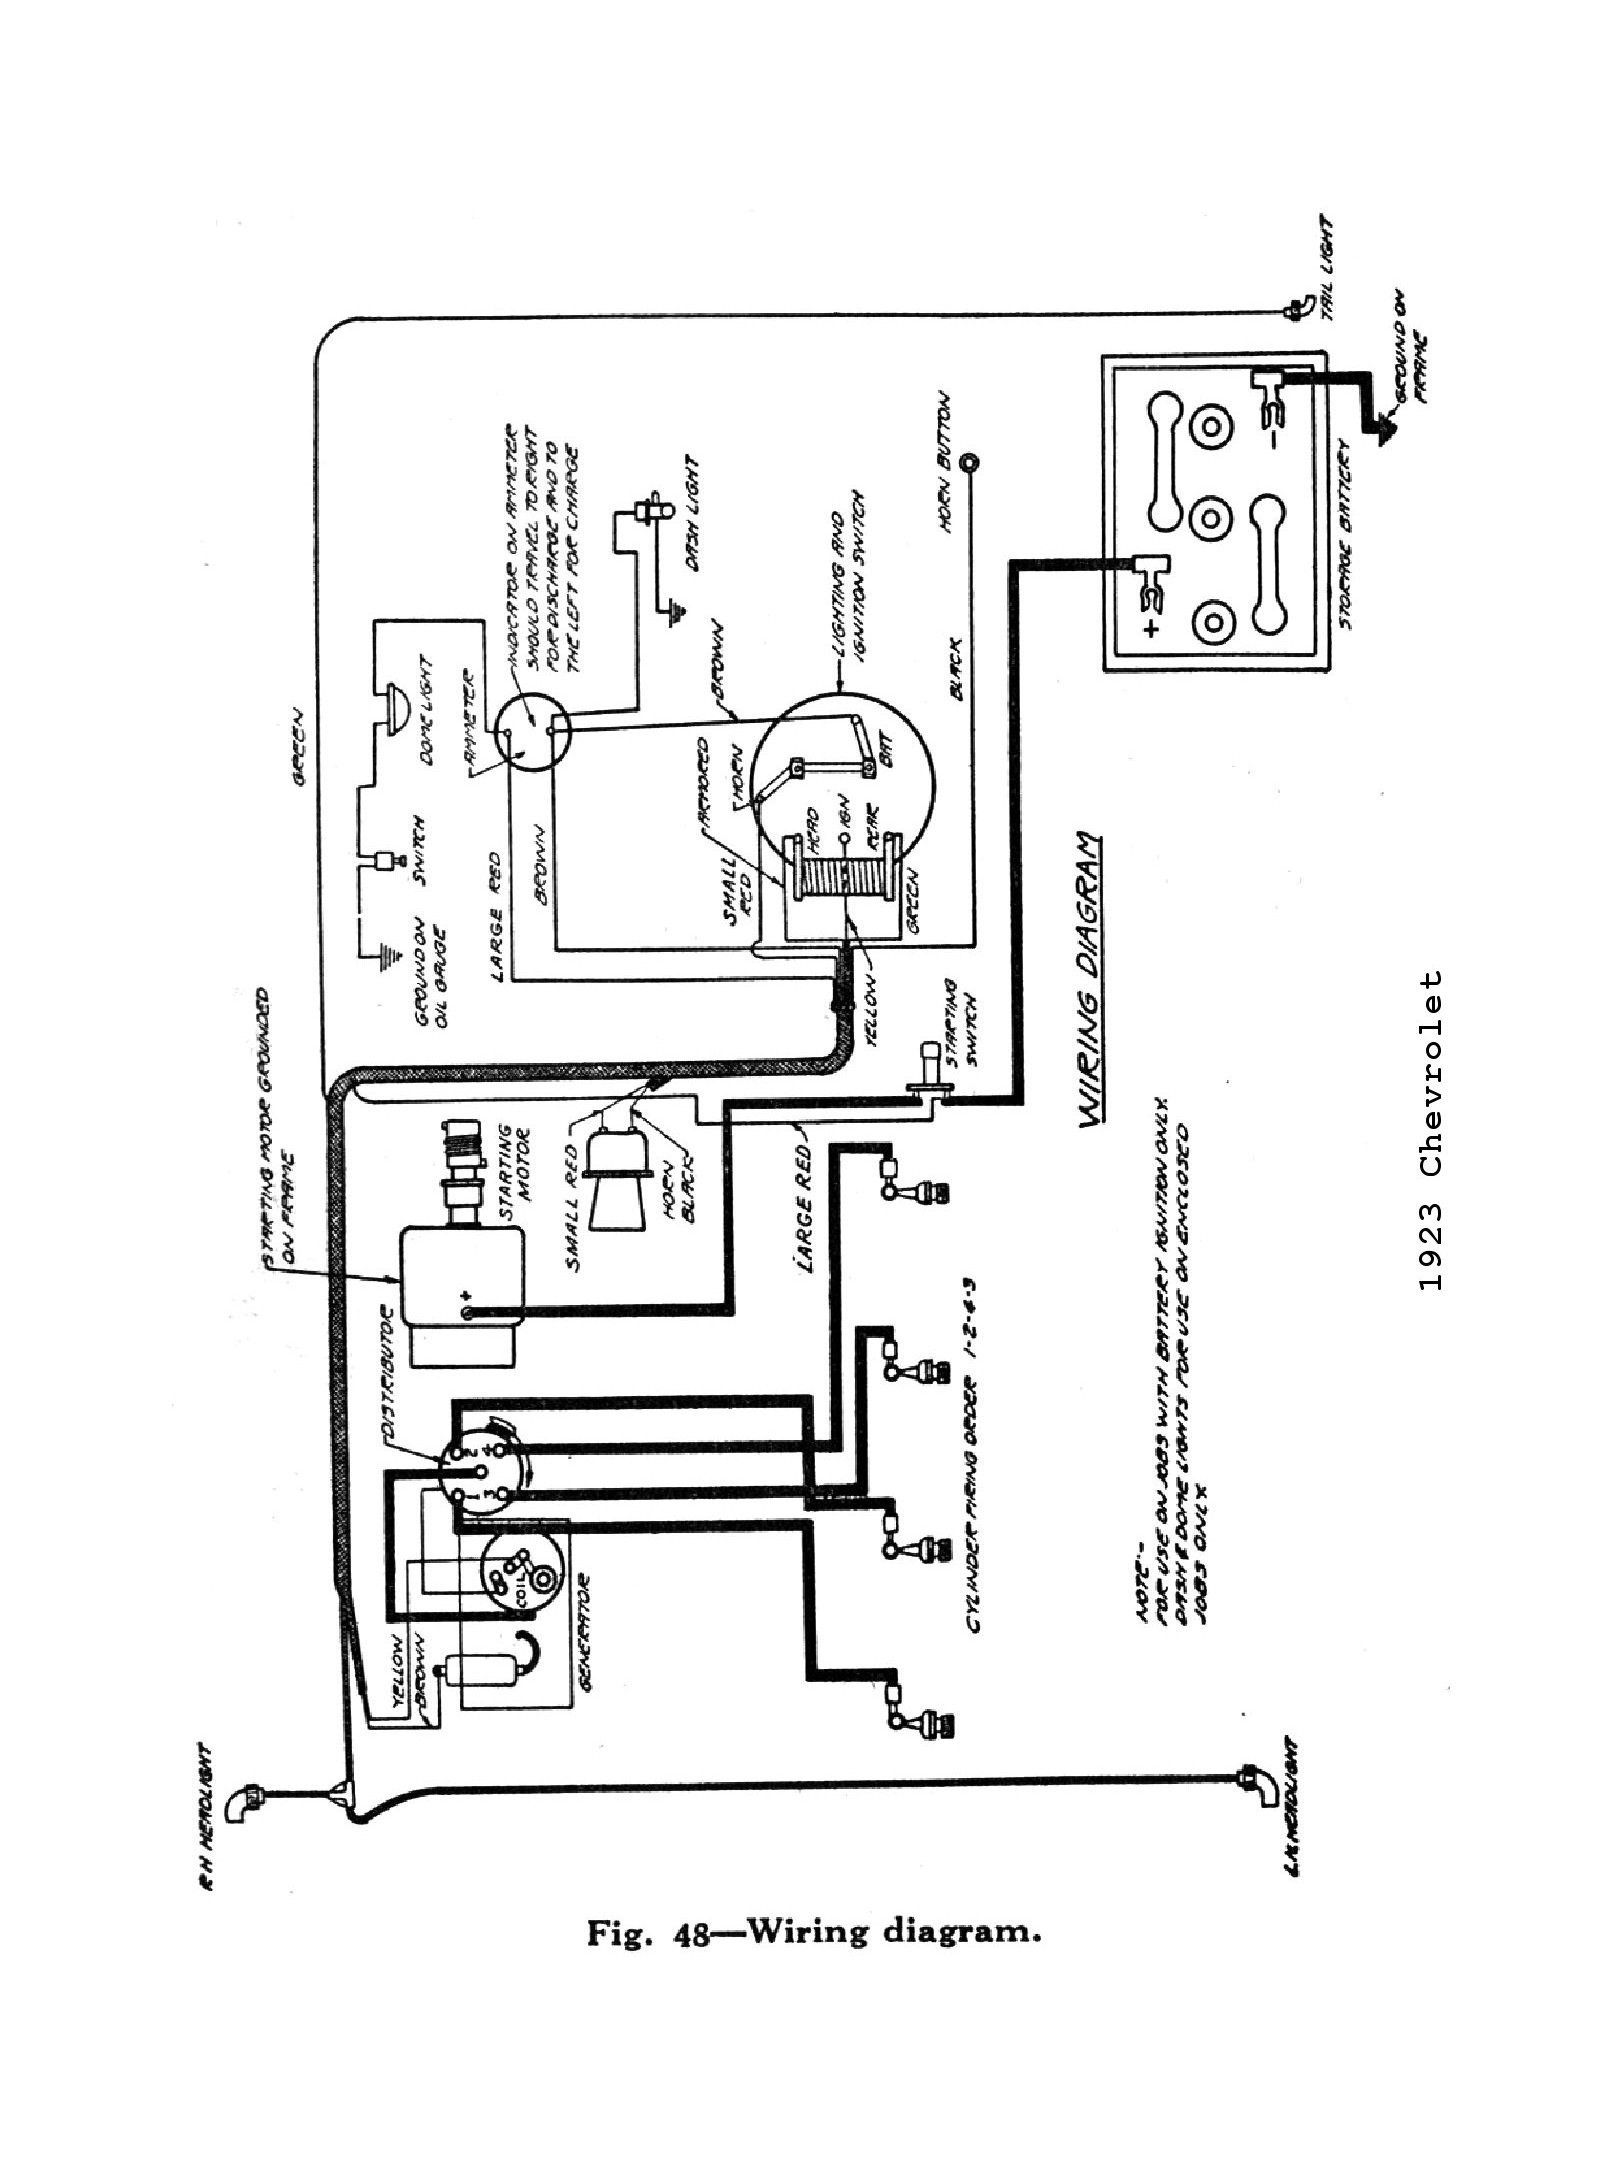 hight resolution of chevy wiring diagrams 1977 c10 wiring diagram 1960 c10 wiring diagram